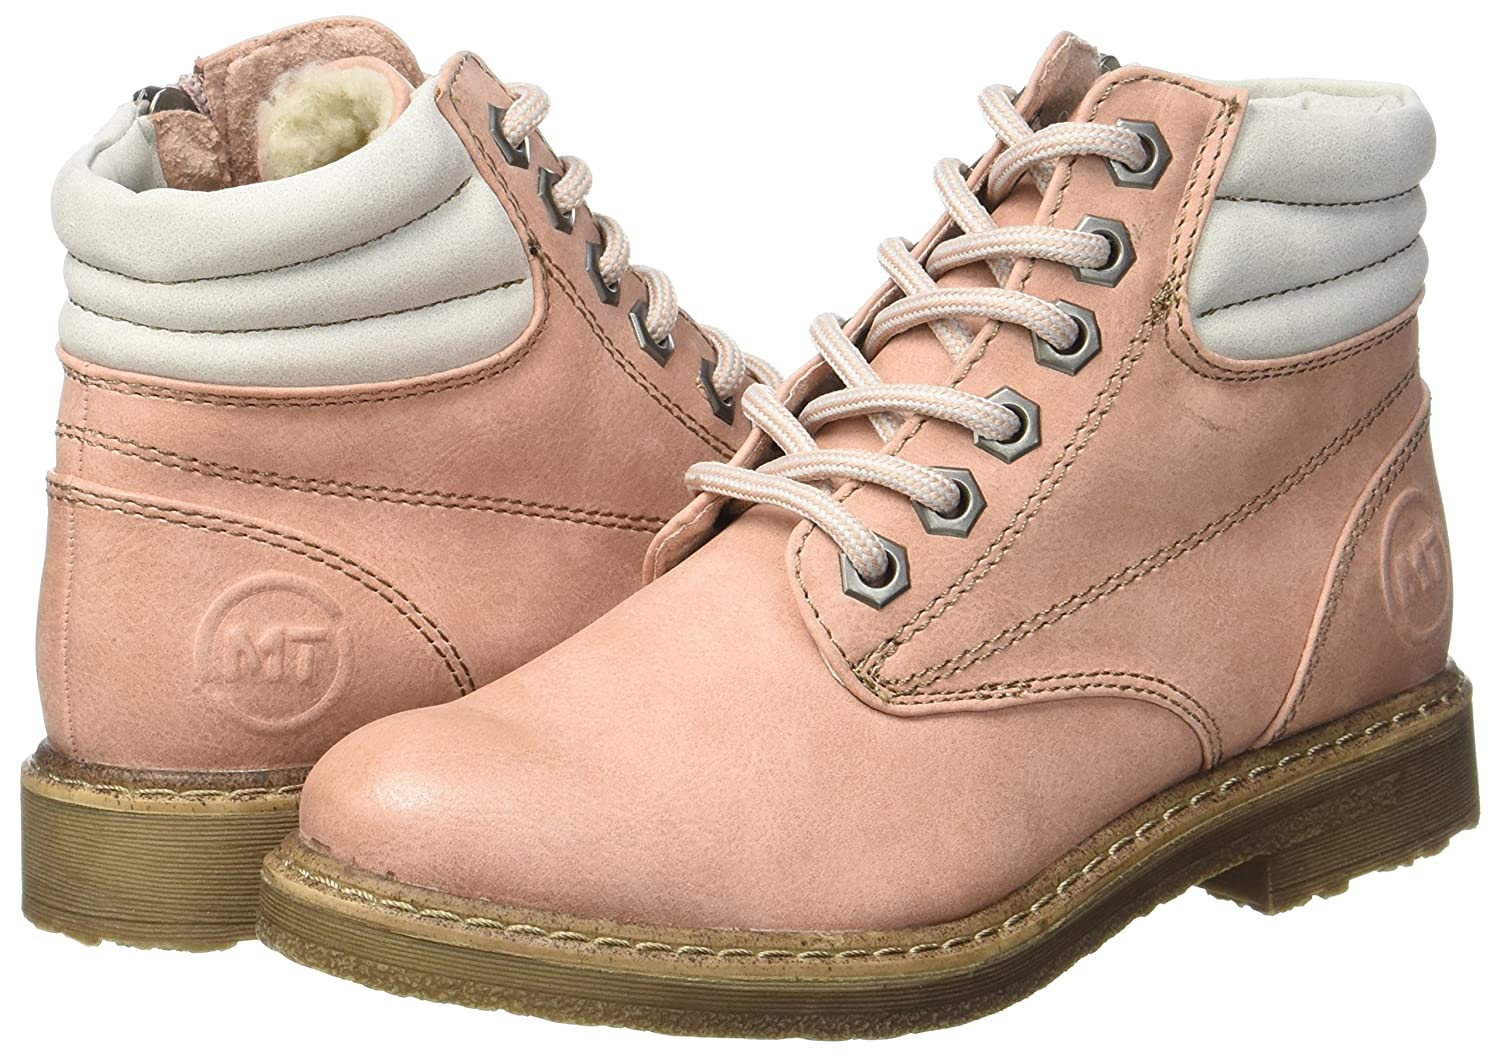 Bottes Fille Marco Tozzi Cool Club 46203